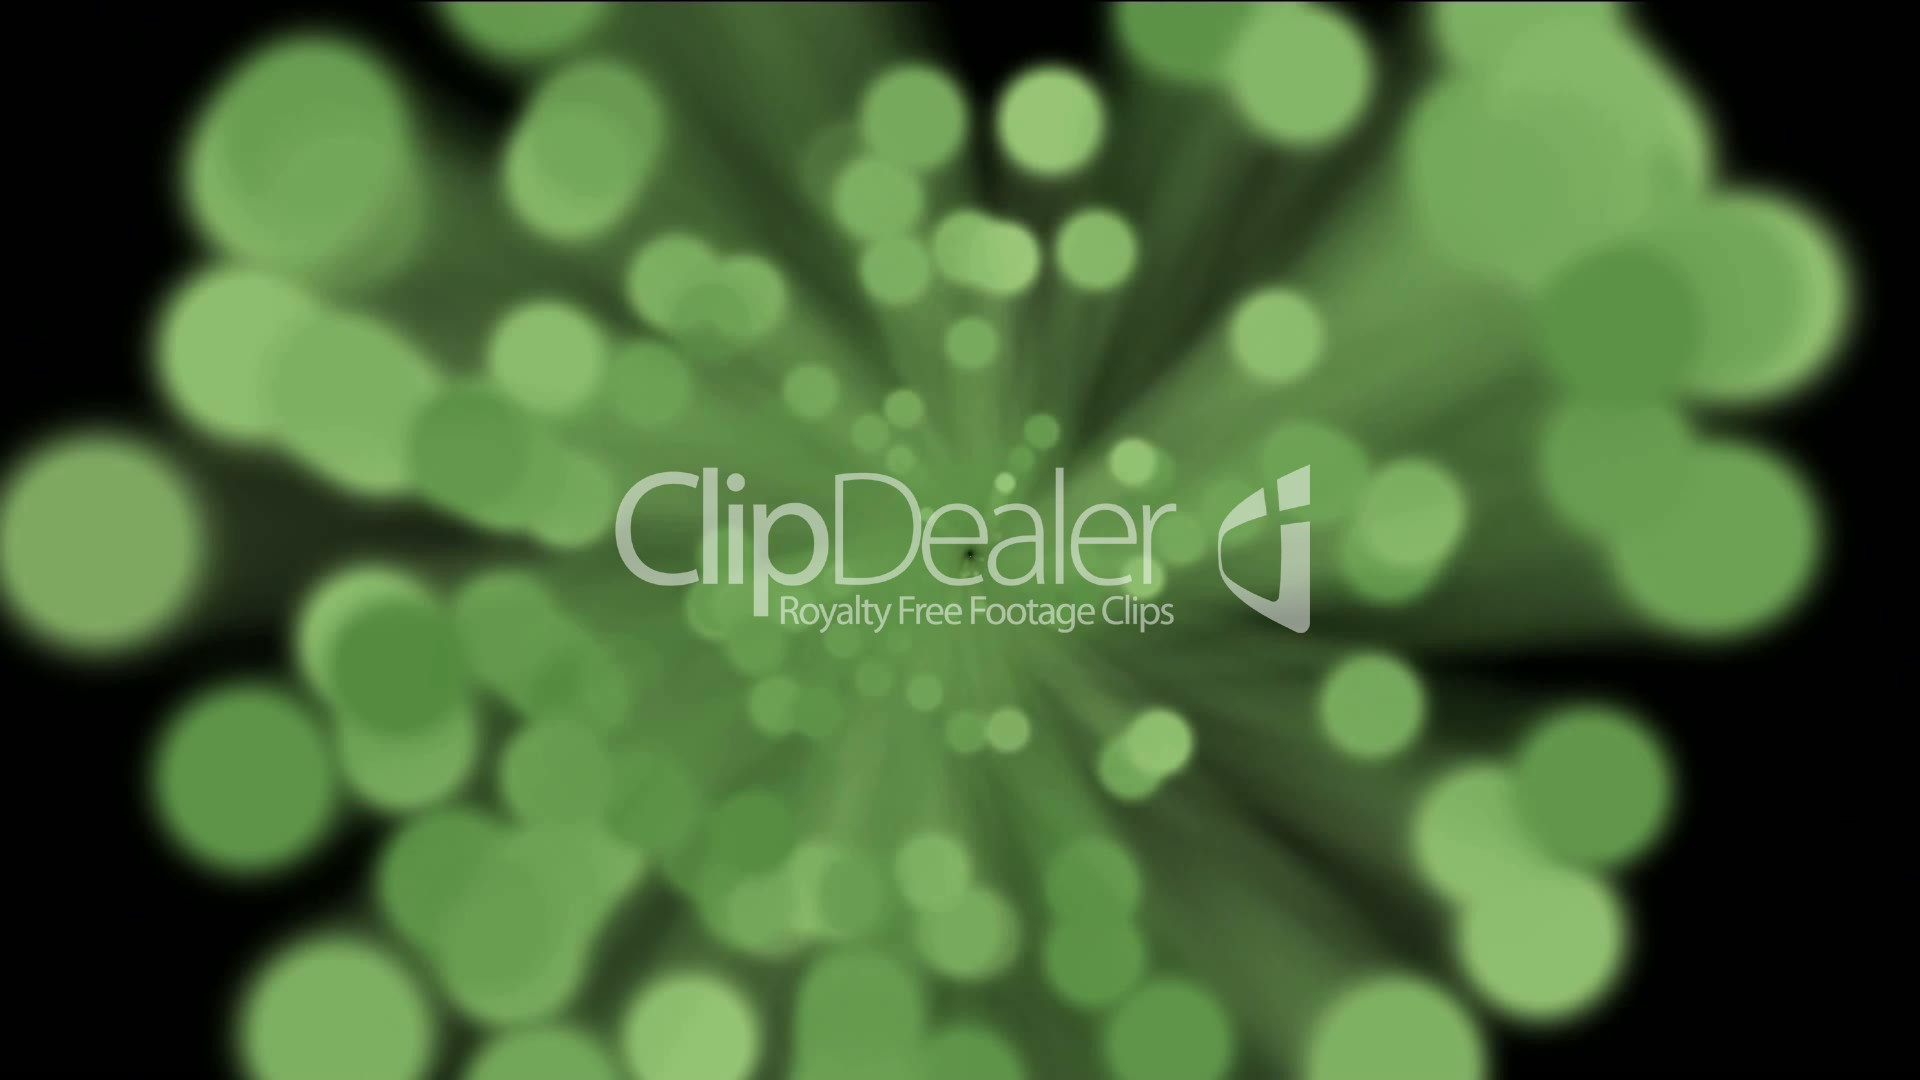 Google ?? http://image.clipdealer.com/1105114/previews/6--1105114-green%2520circle%2520column%2520launch%2520from%2520central,disco%2520party%2520background.cells,drugs,egg,bubble,oxygen,hydrogen,underwater,decoration,ephemera,plankton,feed,Design,symbol,dream,vision,idea,creativity,vj,beautiful,decorative.jpg ?????